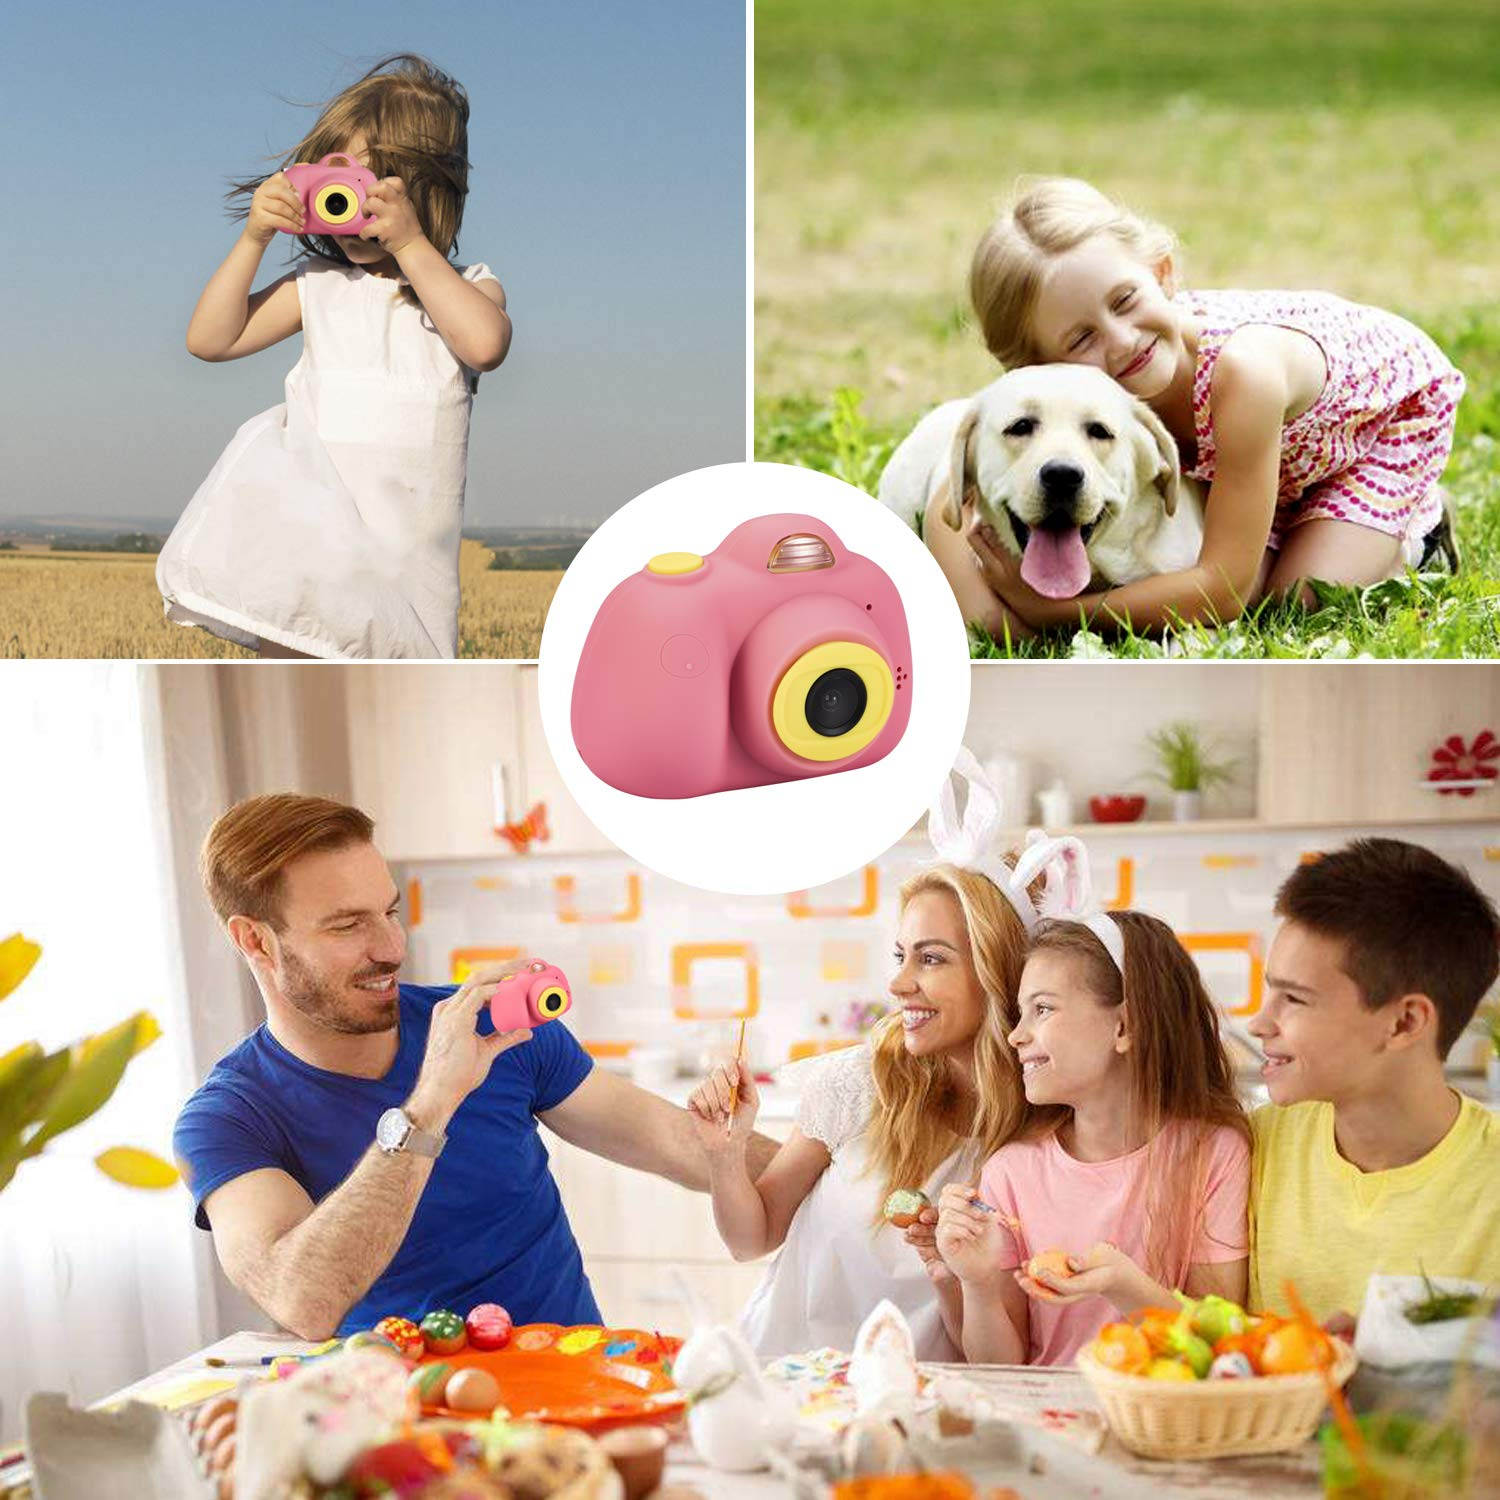 omzer Gift Kids Camera Toys for Girls, Cute Children Cameras Mini Camcorder for 3-8 Years Old Girl with 8MP HD Video Lens Great for Shooting, Deep Pink(16GB Memory Card Included) by omzer (Image #7)